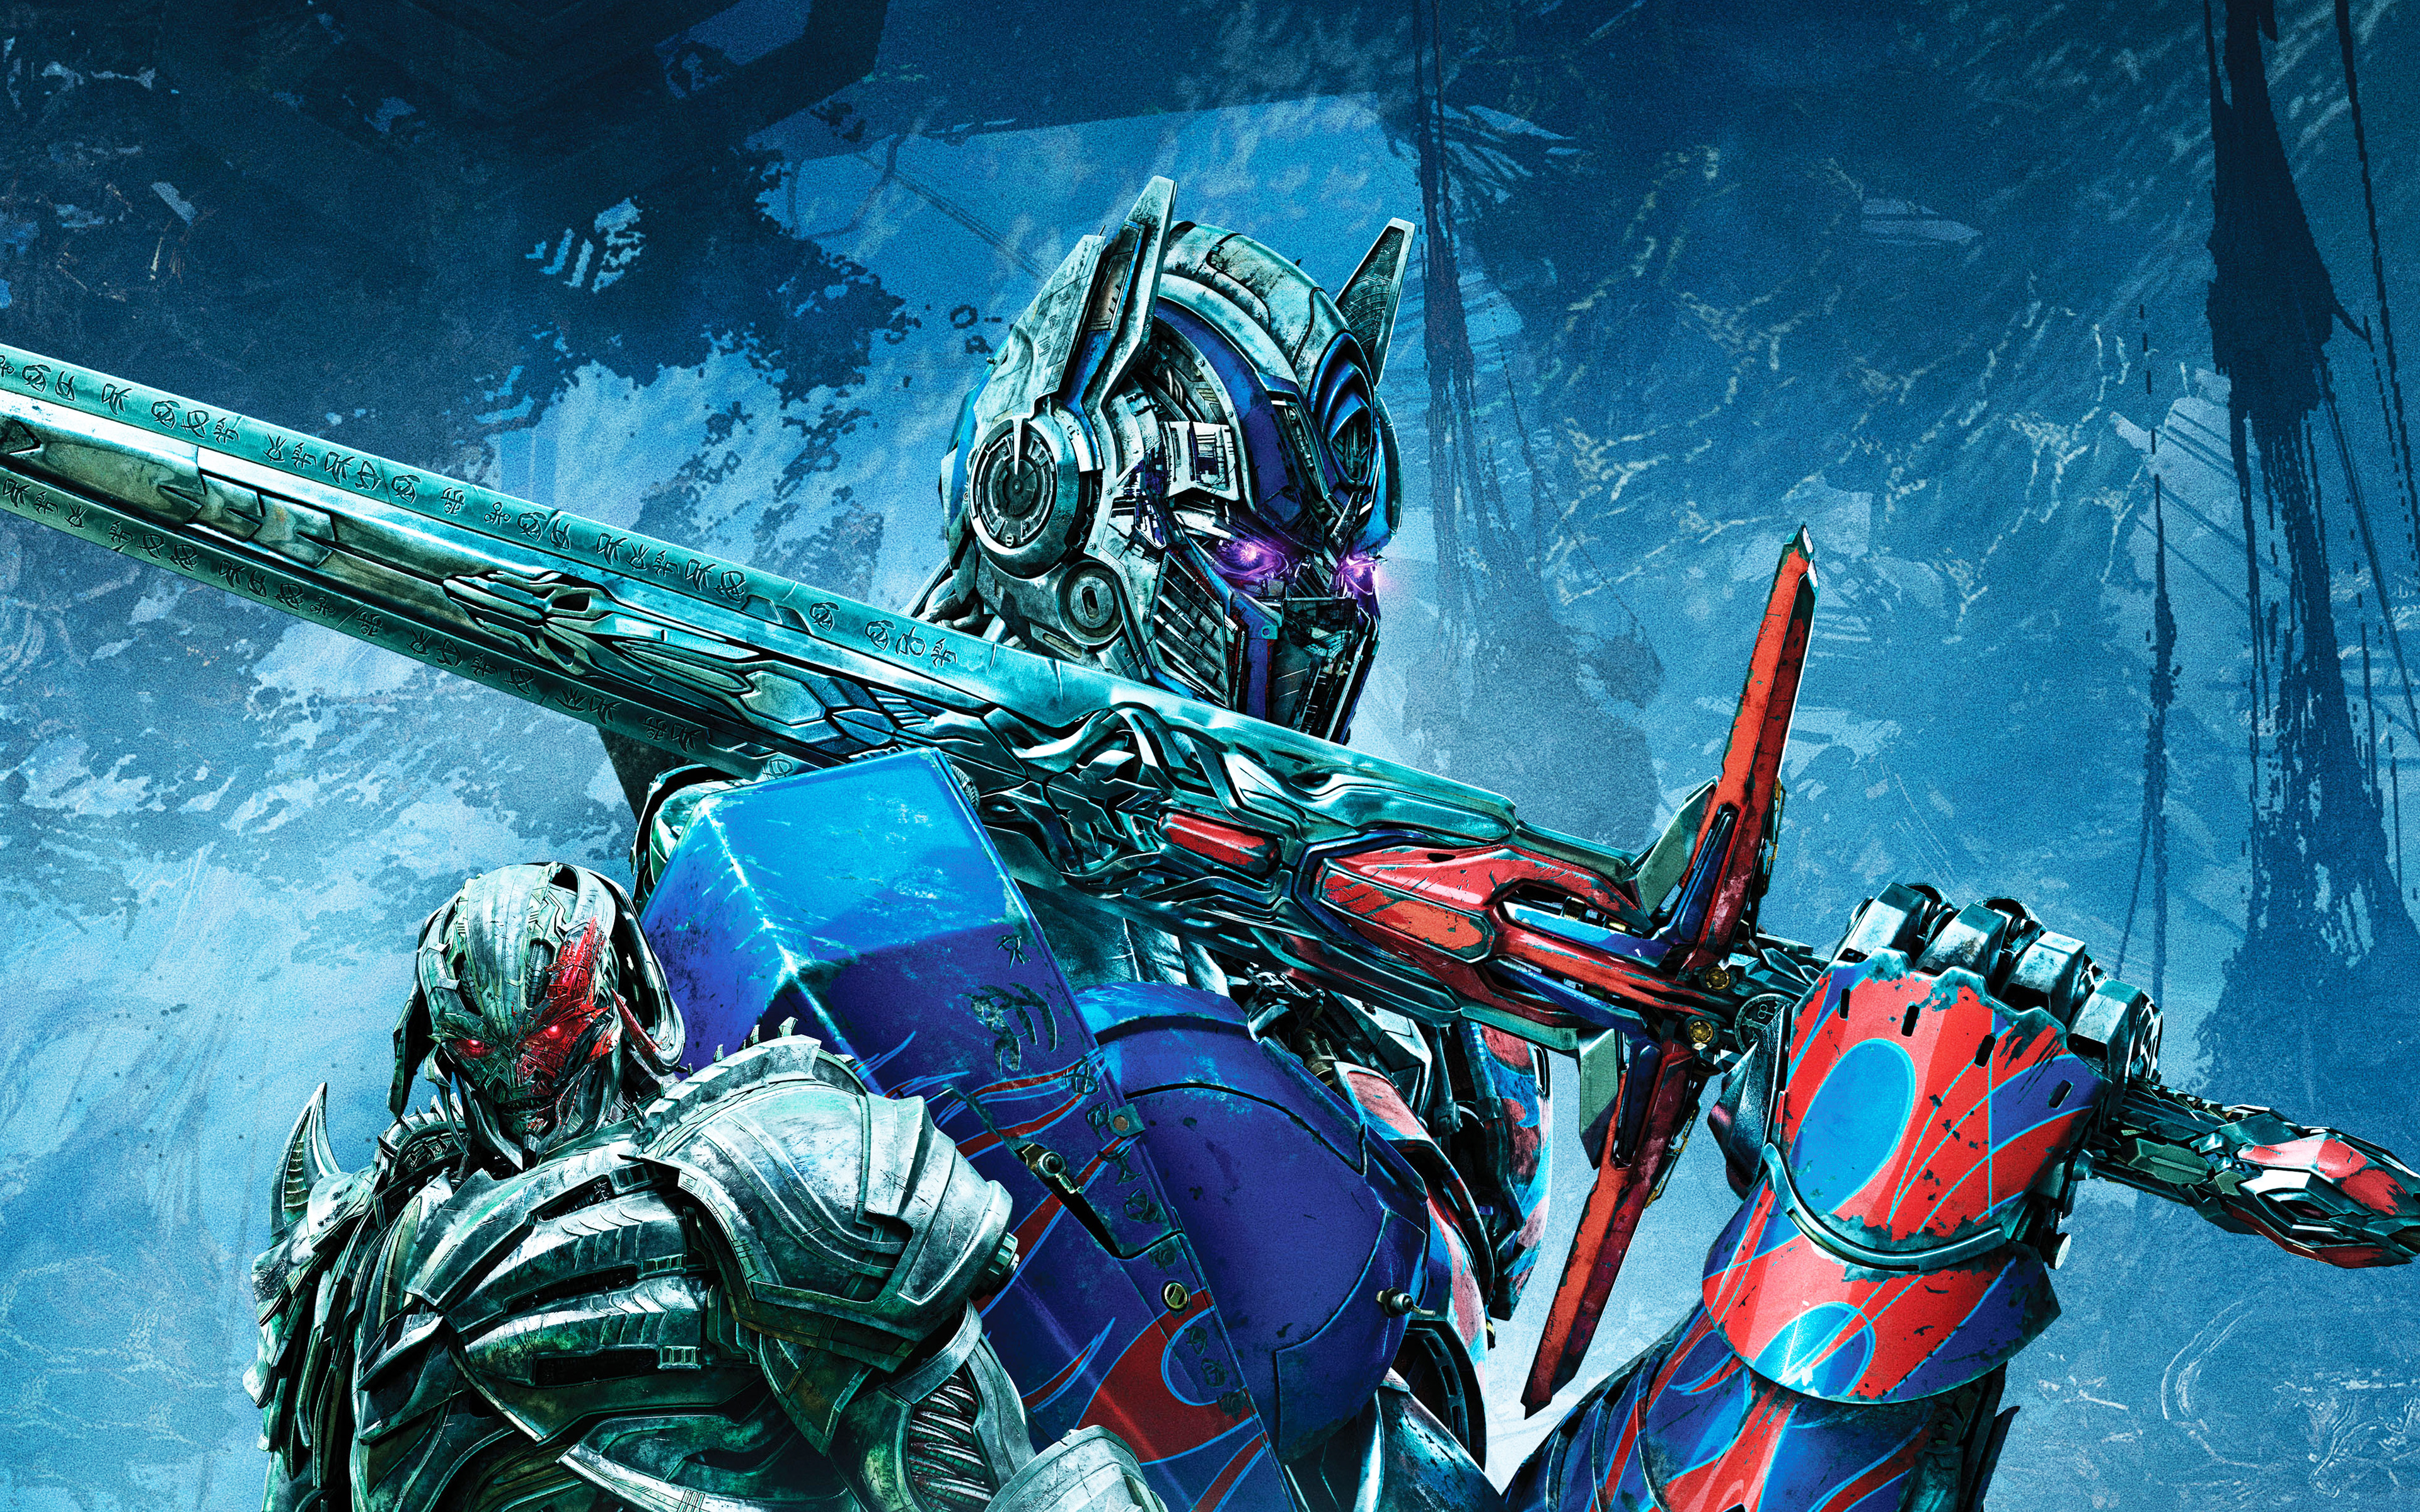 transformers 3 hd wallpapers free download